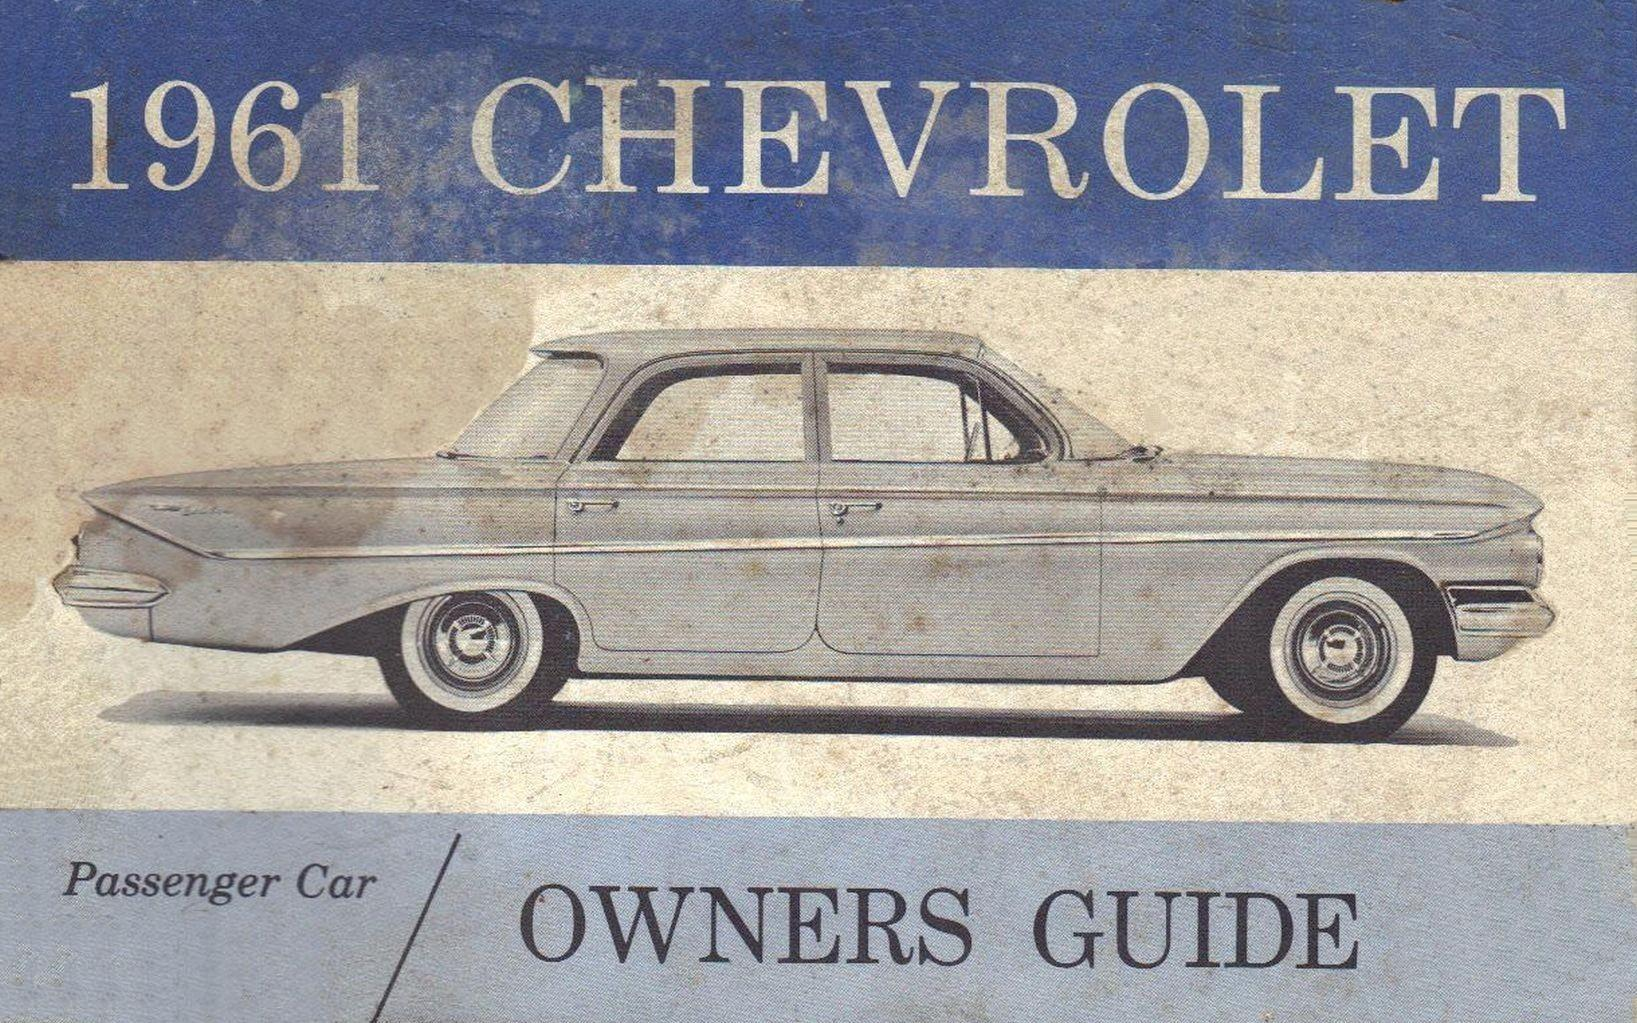 1961 Chevrolet Owners Manual